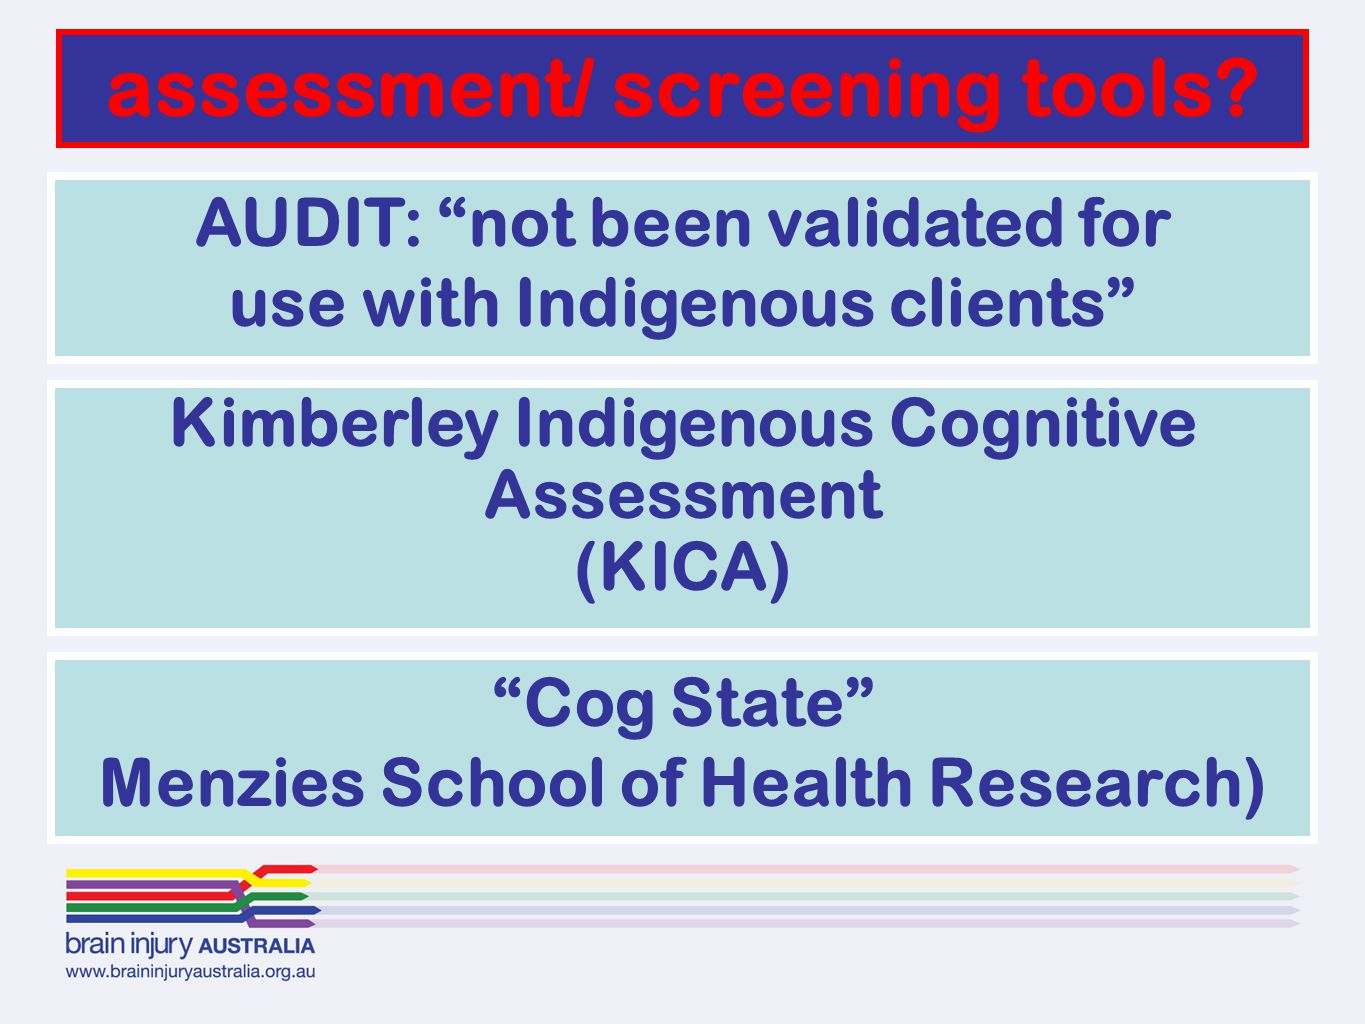 Cog State Menzies School of Health Research) assessment/ screening tools.